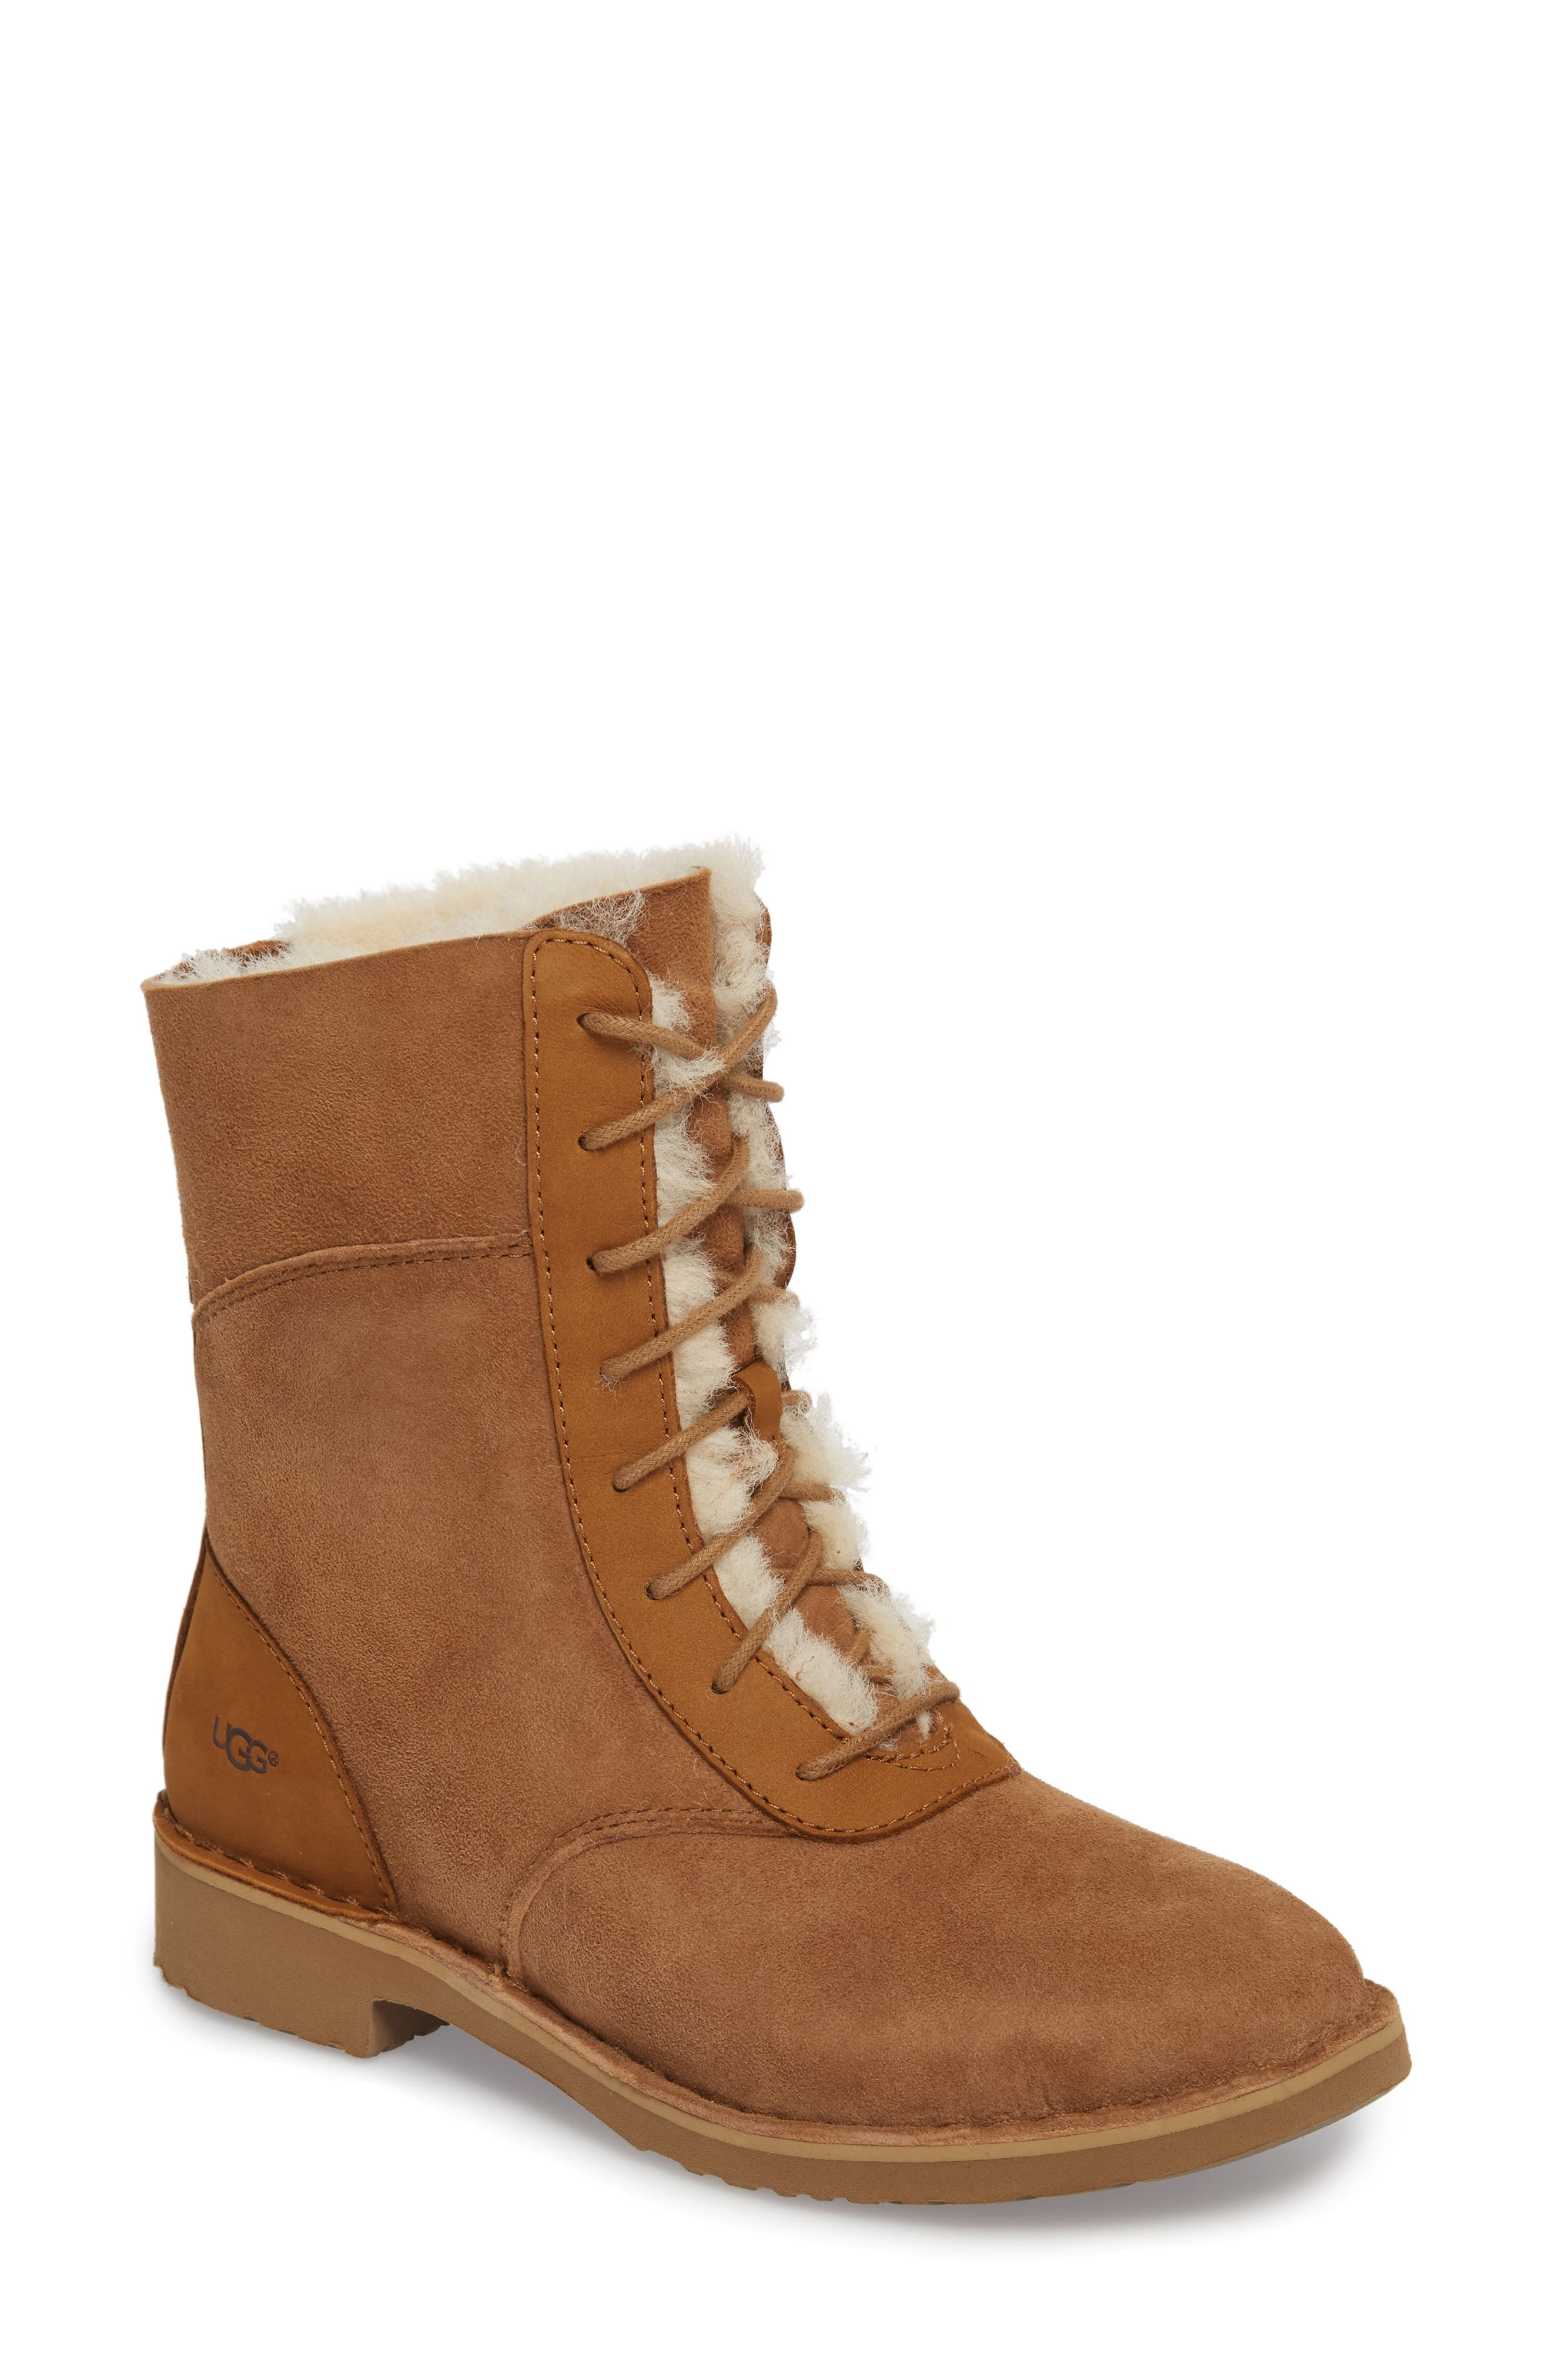 Daney Lace-Up Boot,                         Main,                         color, Chestnut Suede